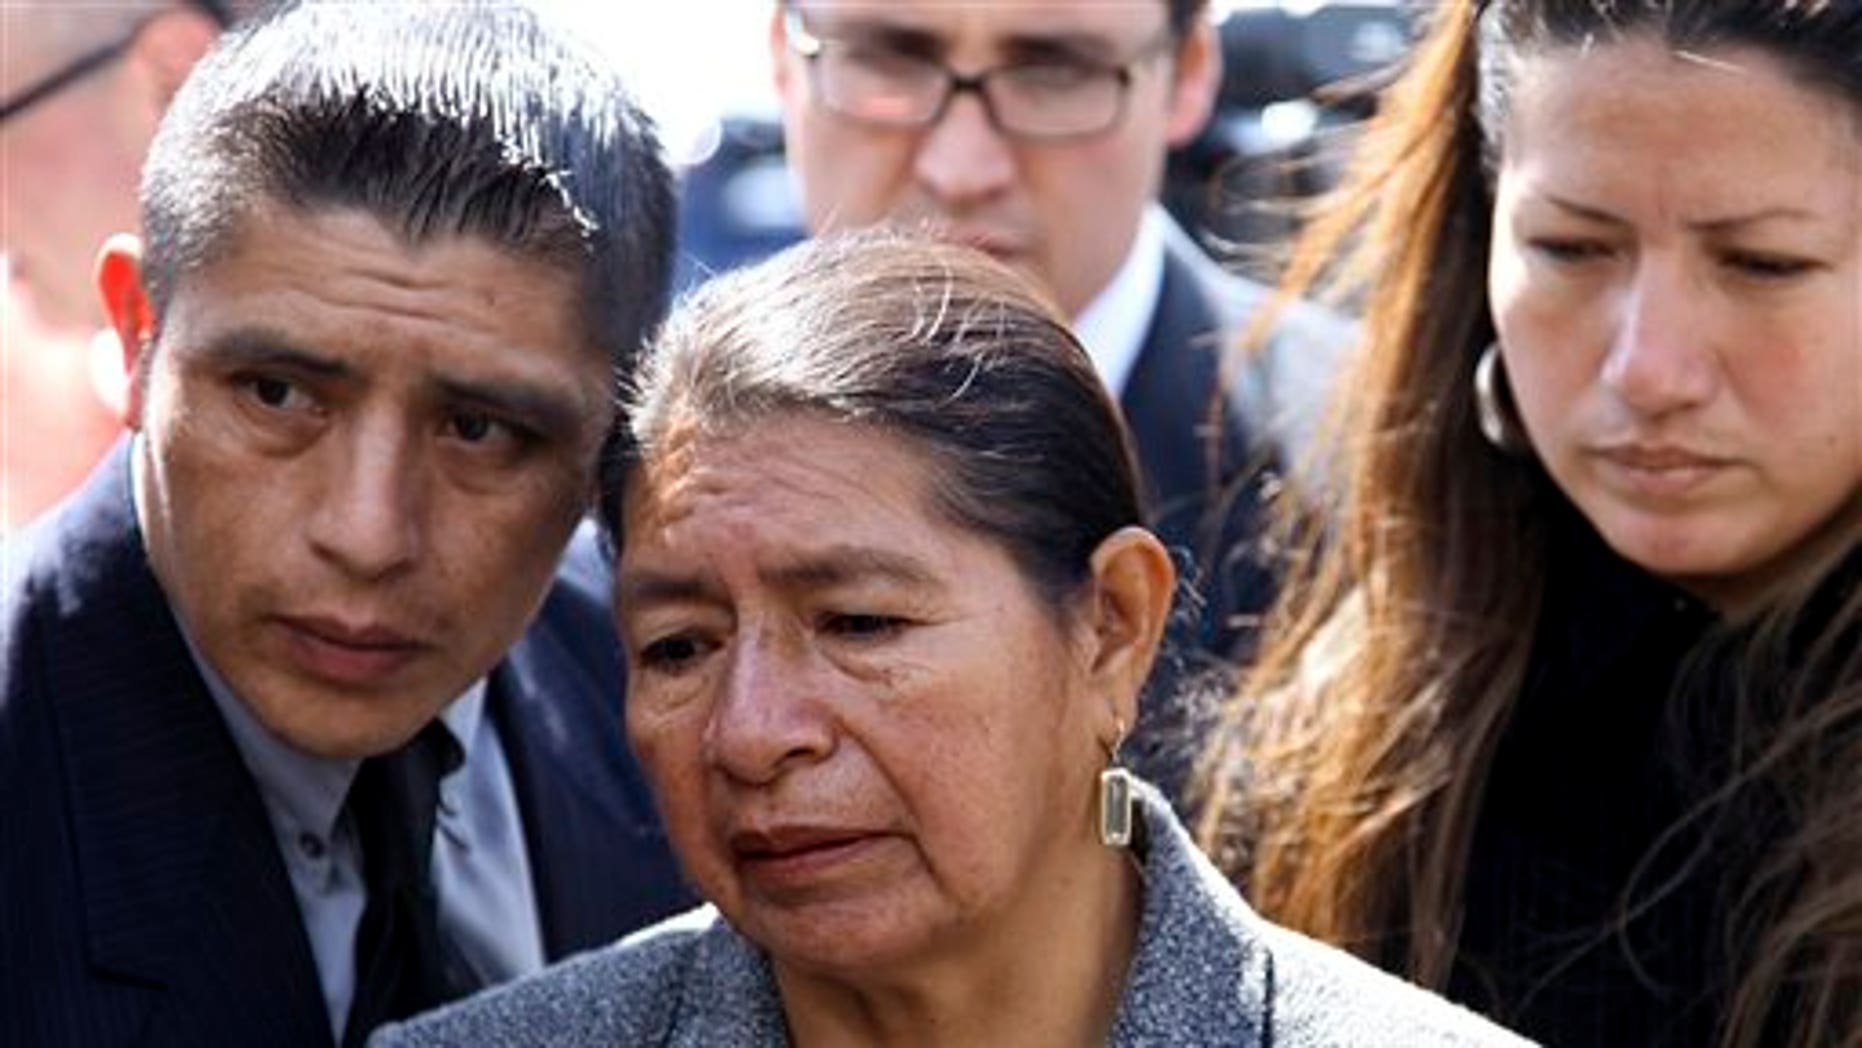 April 19, 2010: Rosario Lucero, center, her son Joselo and daughter Isabel stand near the site where her son Marcelo Lucero was stabbed to death in Patchogue, N.Y.